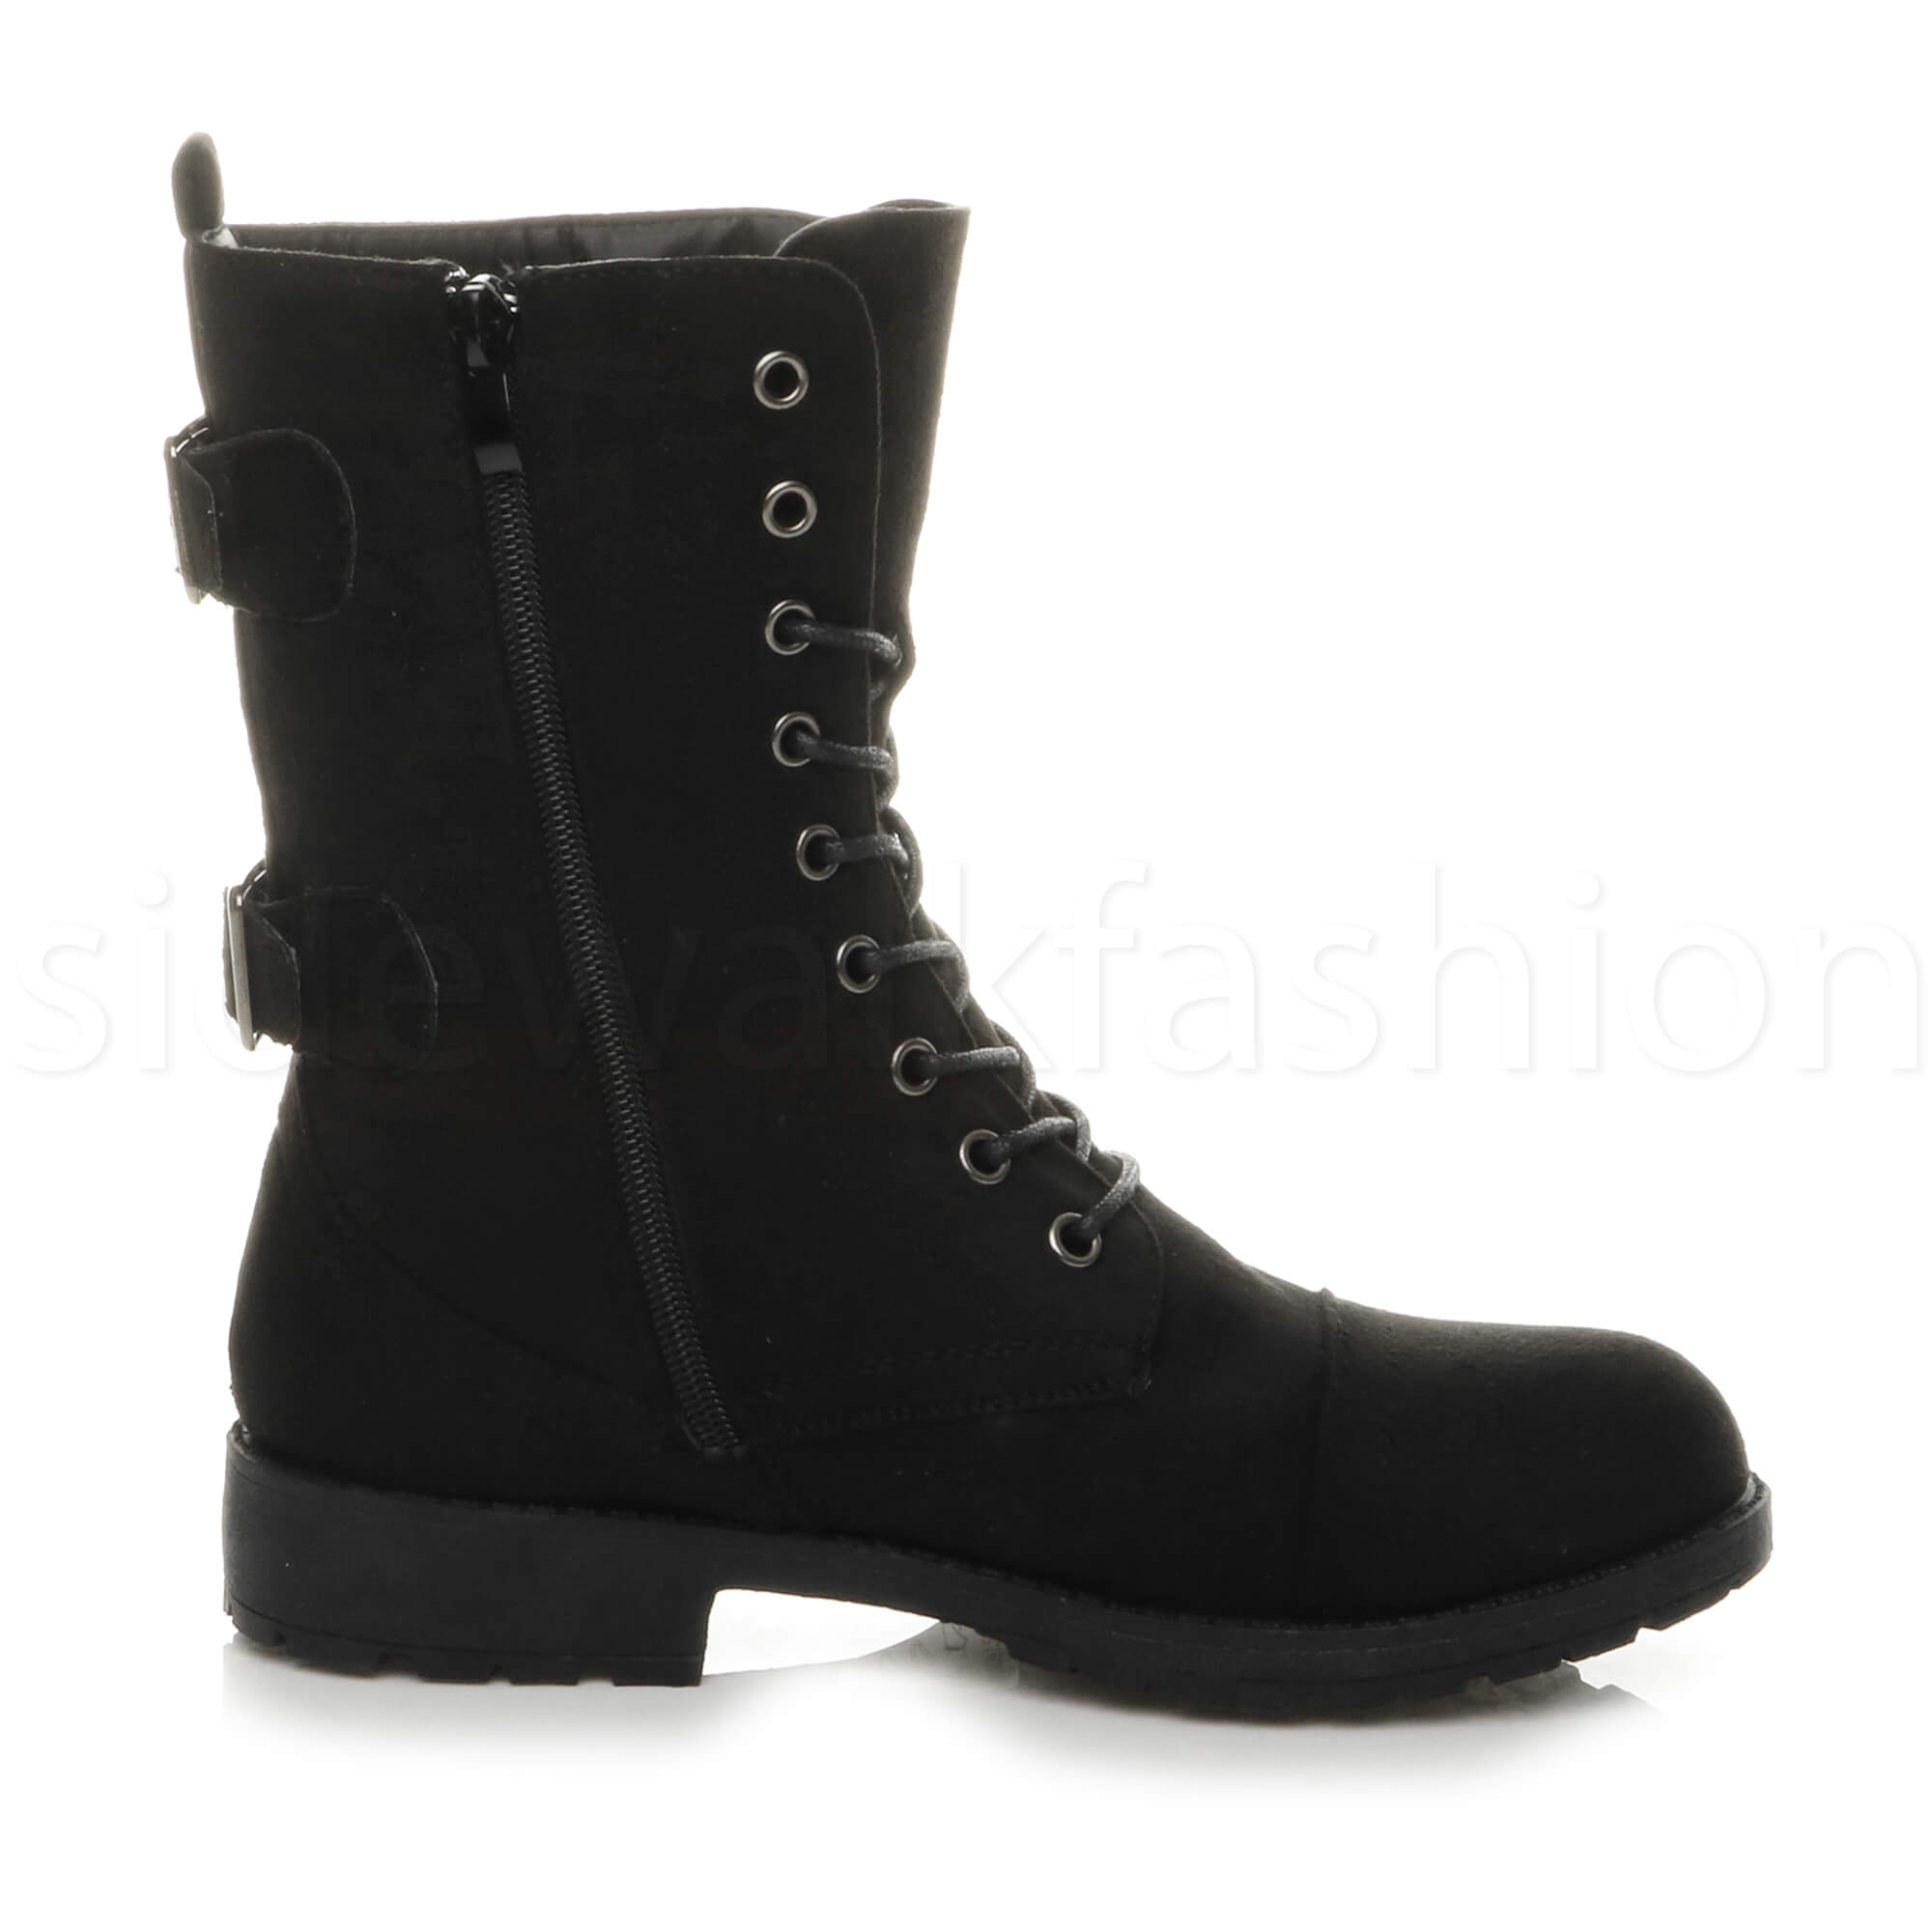 Womens-ladies-low-heel-flat-lace-up-zip-combat-biker-military-ankle-boots-size thumbnail 20